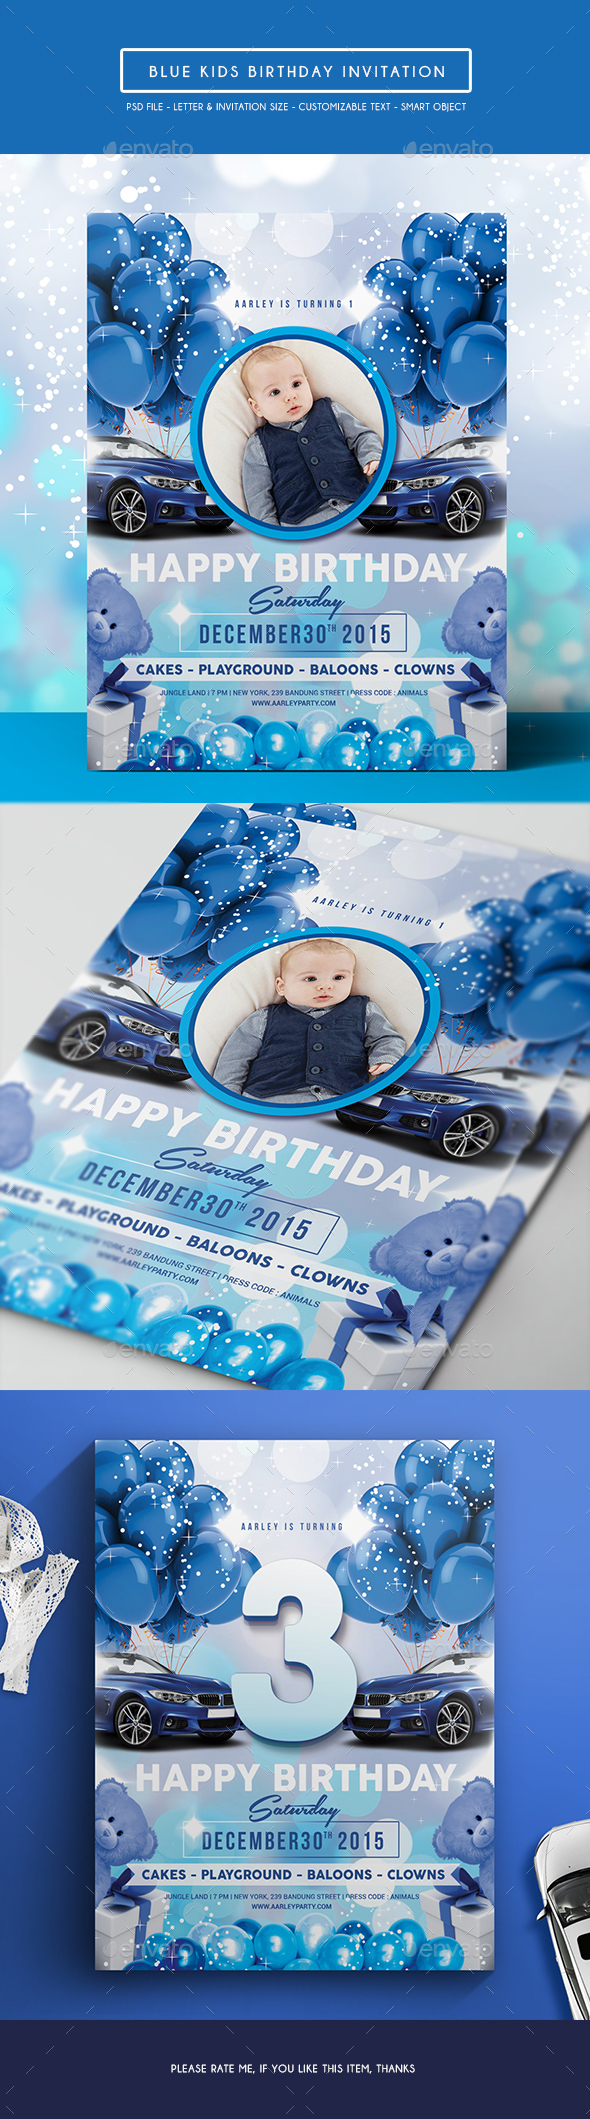 Blue Kids Birthday Invitation